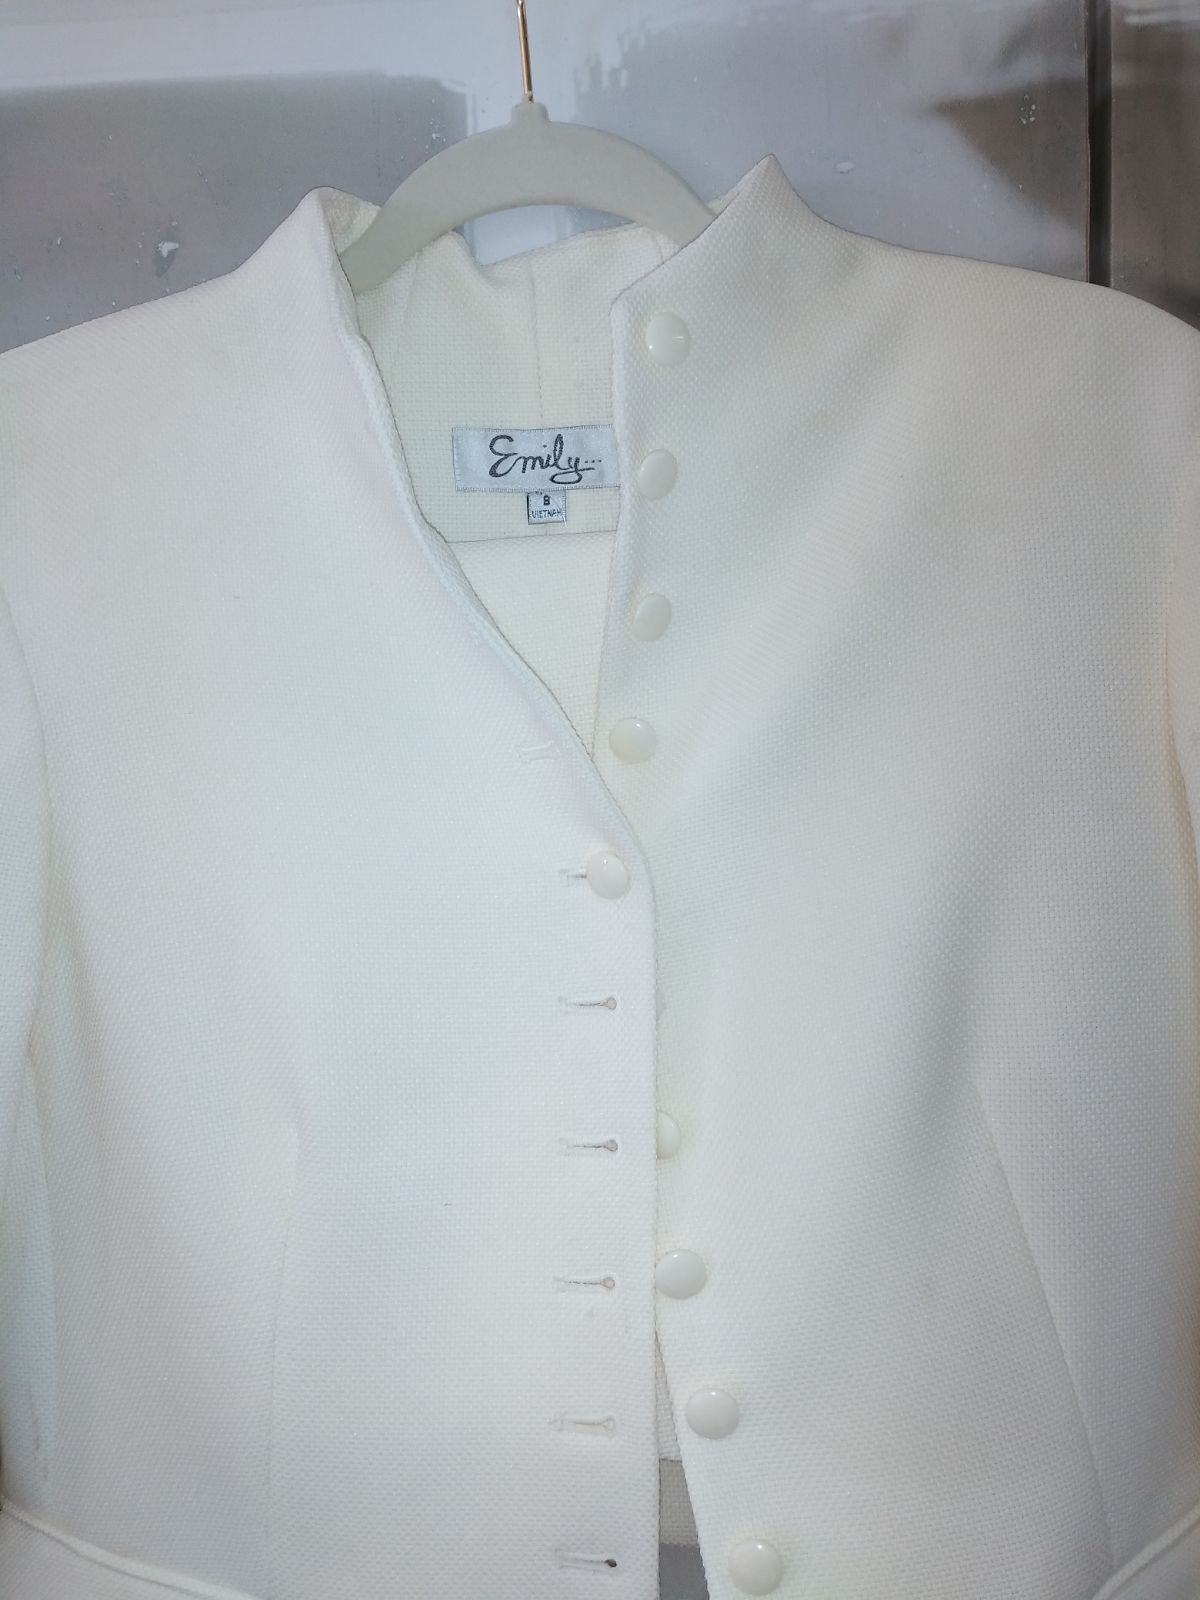 Emily Skirt Suit Sz. 8 NWT.  (Ivory Colo